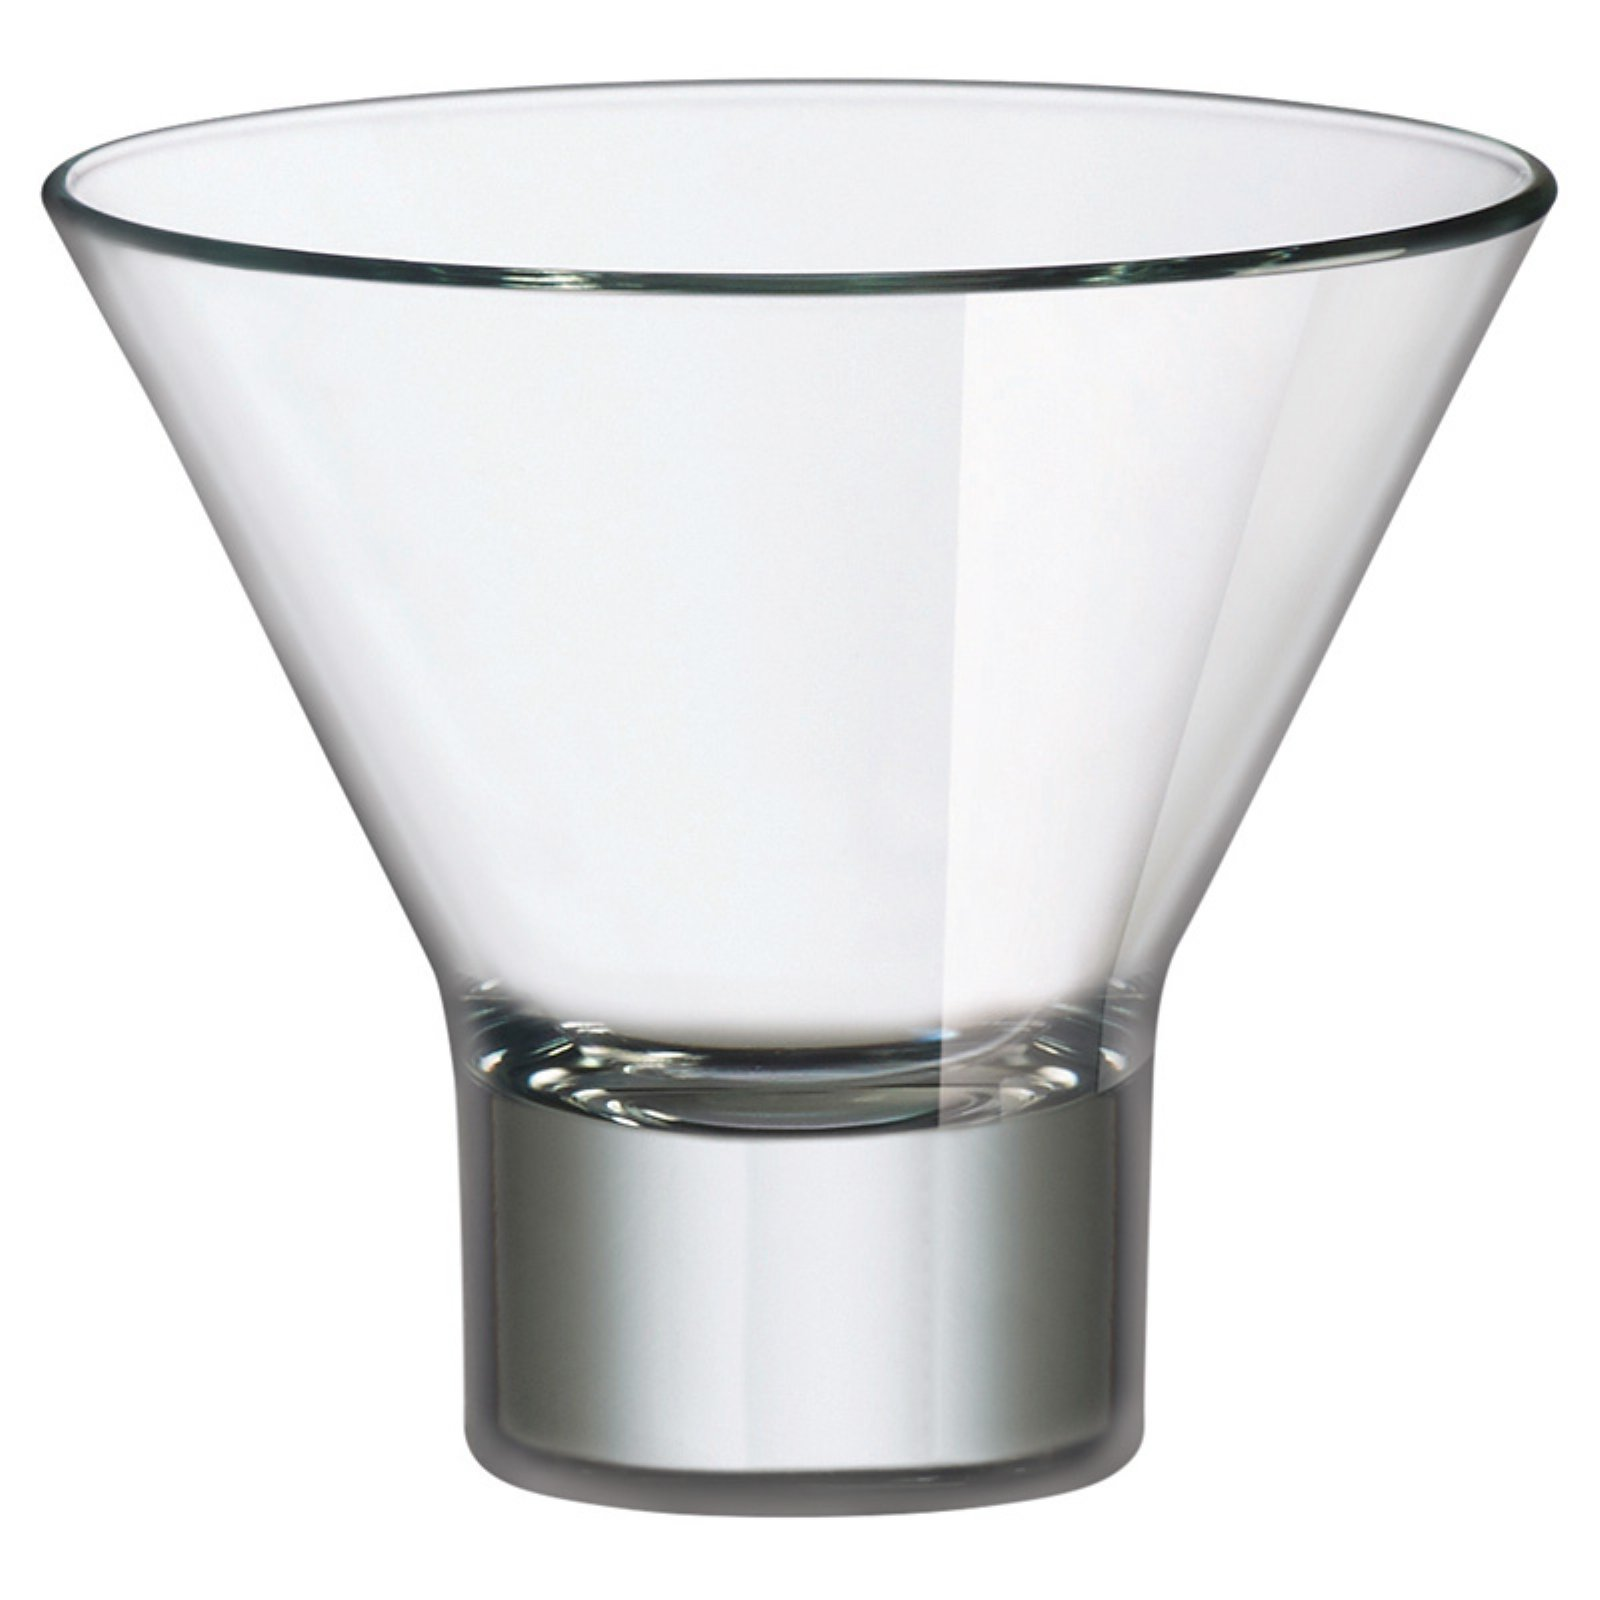 Global Amici Bartenders Choice Dizzy Cocktail Glass Set of 4 by Global Amici